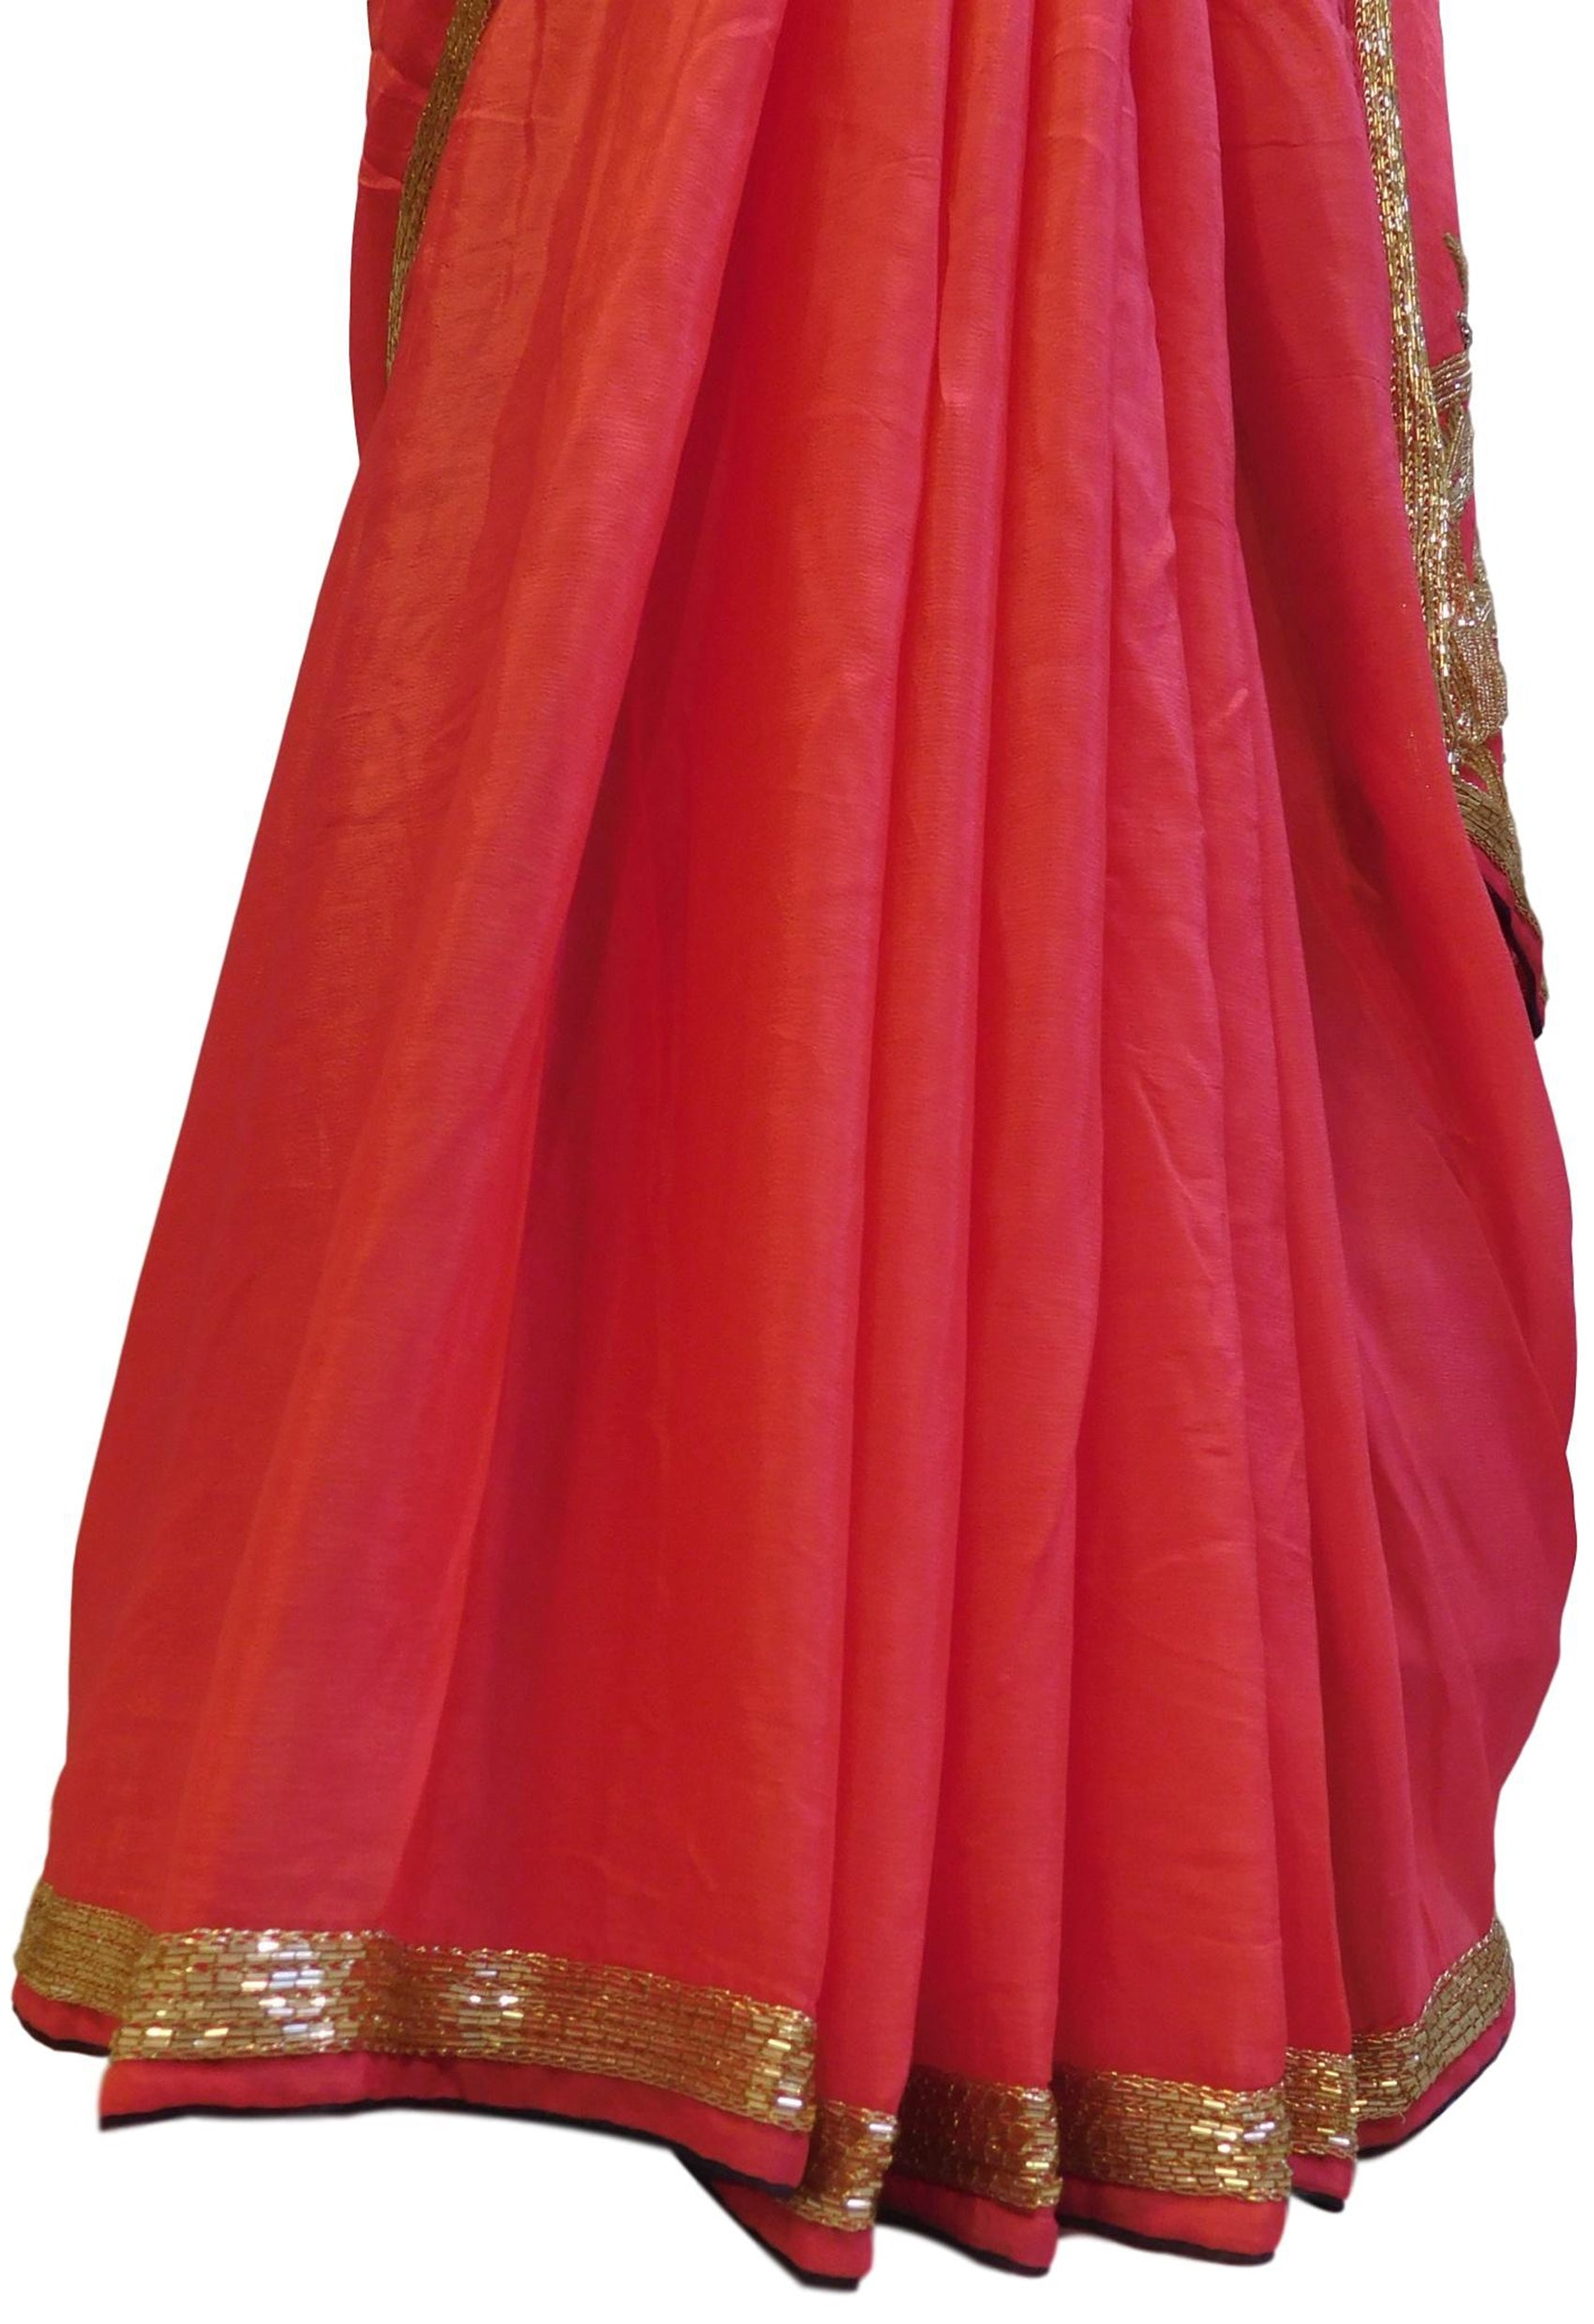 Pink Designer Bridal Crepe (Chinon) Hand Embroidery Zari Cutdana Beads Bullion Work Wedding Saree Sari